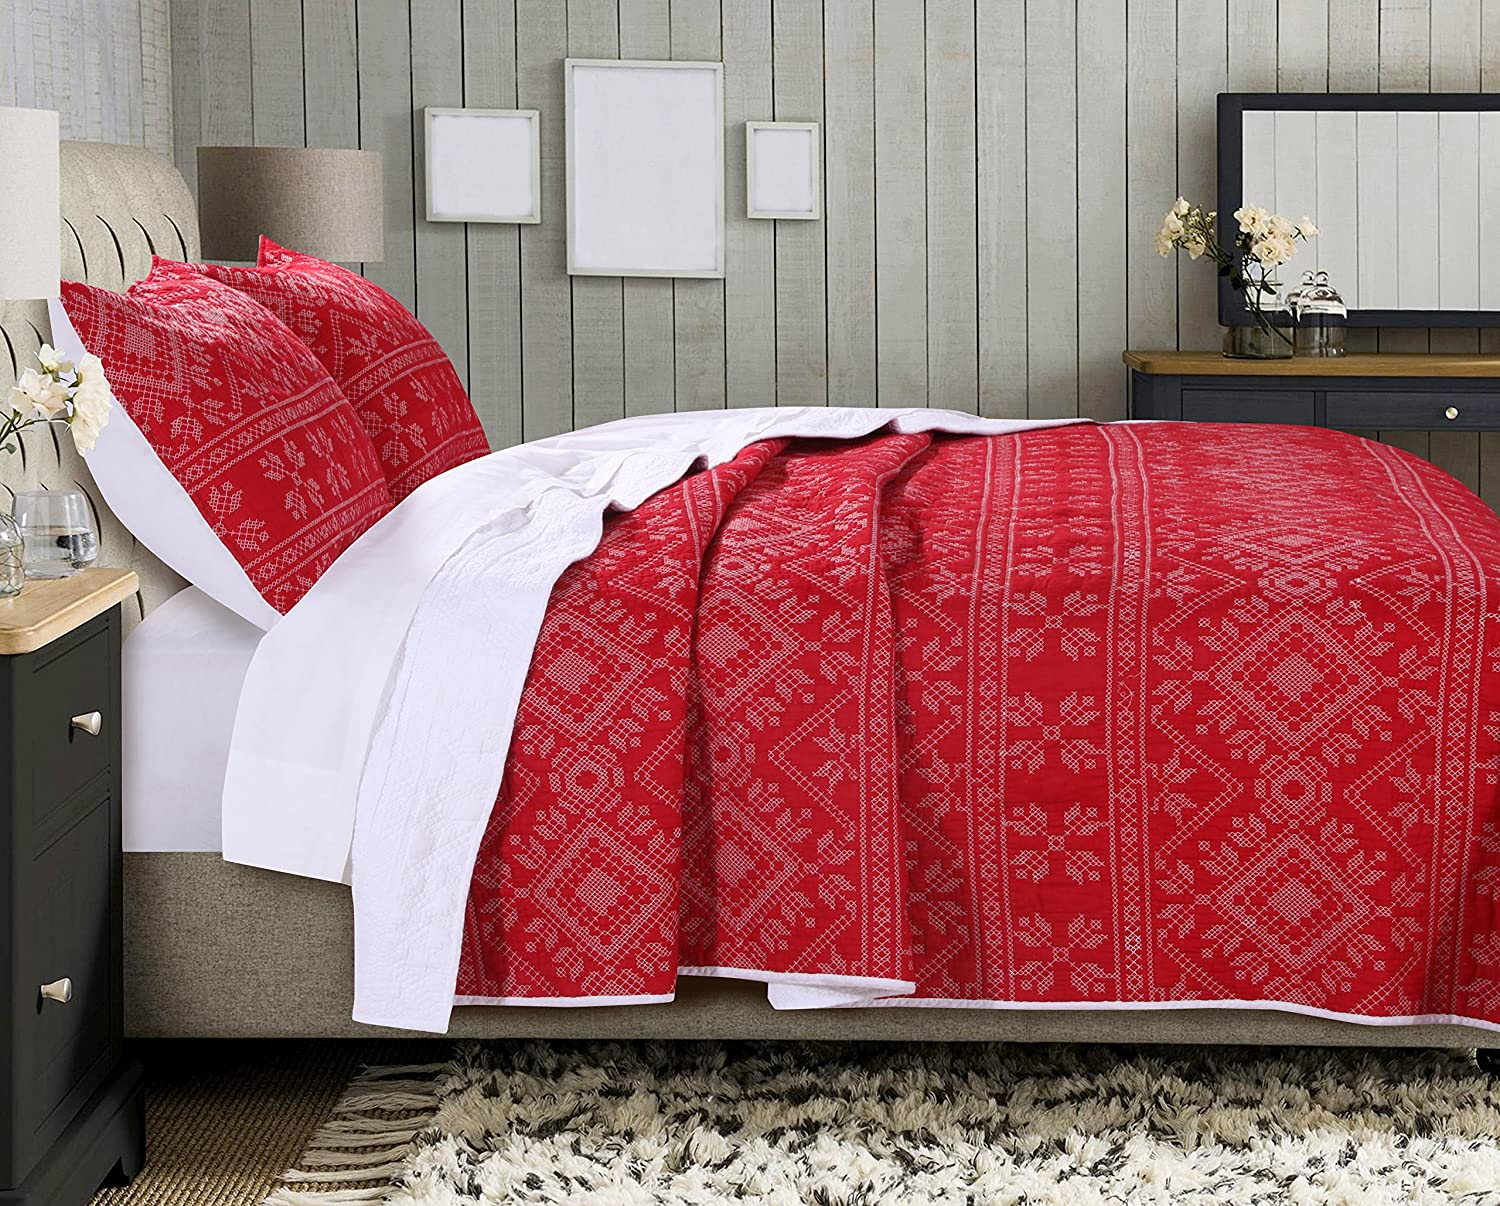 Greenland Home Holly Quilt Set with Cross Stitching, Red (3 Piece), Full/Queen